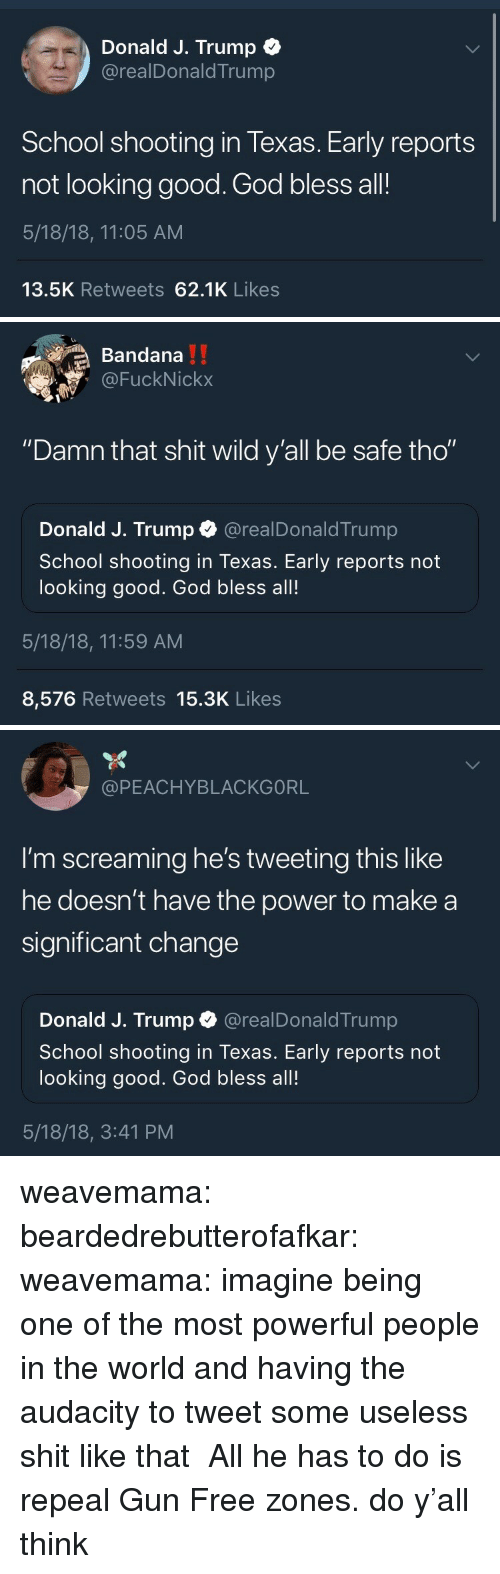 """Good God: Donald J. Trump +  @realDonaldTrump  School shooting in Texas. Early reports  not looking good. God bless all!  5/18/18, 11:05 AM  13.5K Retweets 62.1K Likes   Bandana  @FuckNickx  """"Damn that shit wild y'all be safe tho""""  Donald J. Trump @realDonaldTrump  School shooting in Texas. Early reports not  looking good. God bless all!  5/18/18, 11:59 AM  8,576 Retweets 15.3K Likes   @PEACHYBLACKGORL  I'm screaming he's tweeting this like  he doesn't have the power to make a  significant change  Donald J. Trump @realDonaldTrump  School shooting in Texas. Early reports not  looking good. God bless all!  5/18/18, 3:41 PM weavemama:  beardedrebutterofafkar: weavemama:  imagine being one of the most powerful people in the world and having the audacity to tweet some useless shit like that  All he has to do is repeal Gun Free zones.  do y'all think"""